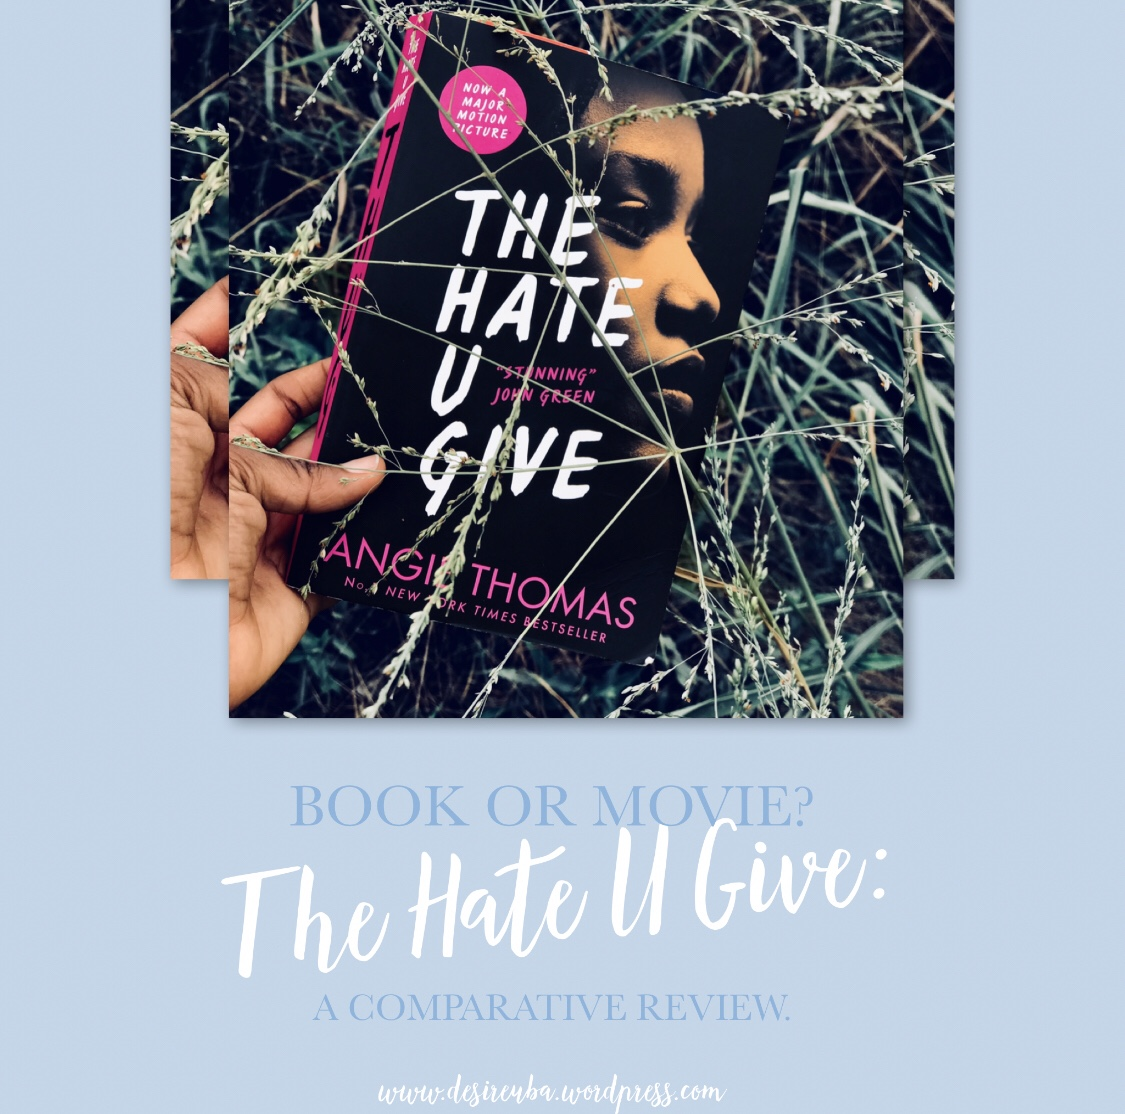 comparative review of the hate u give book movie desire uba